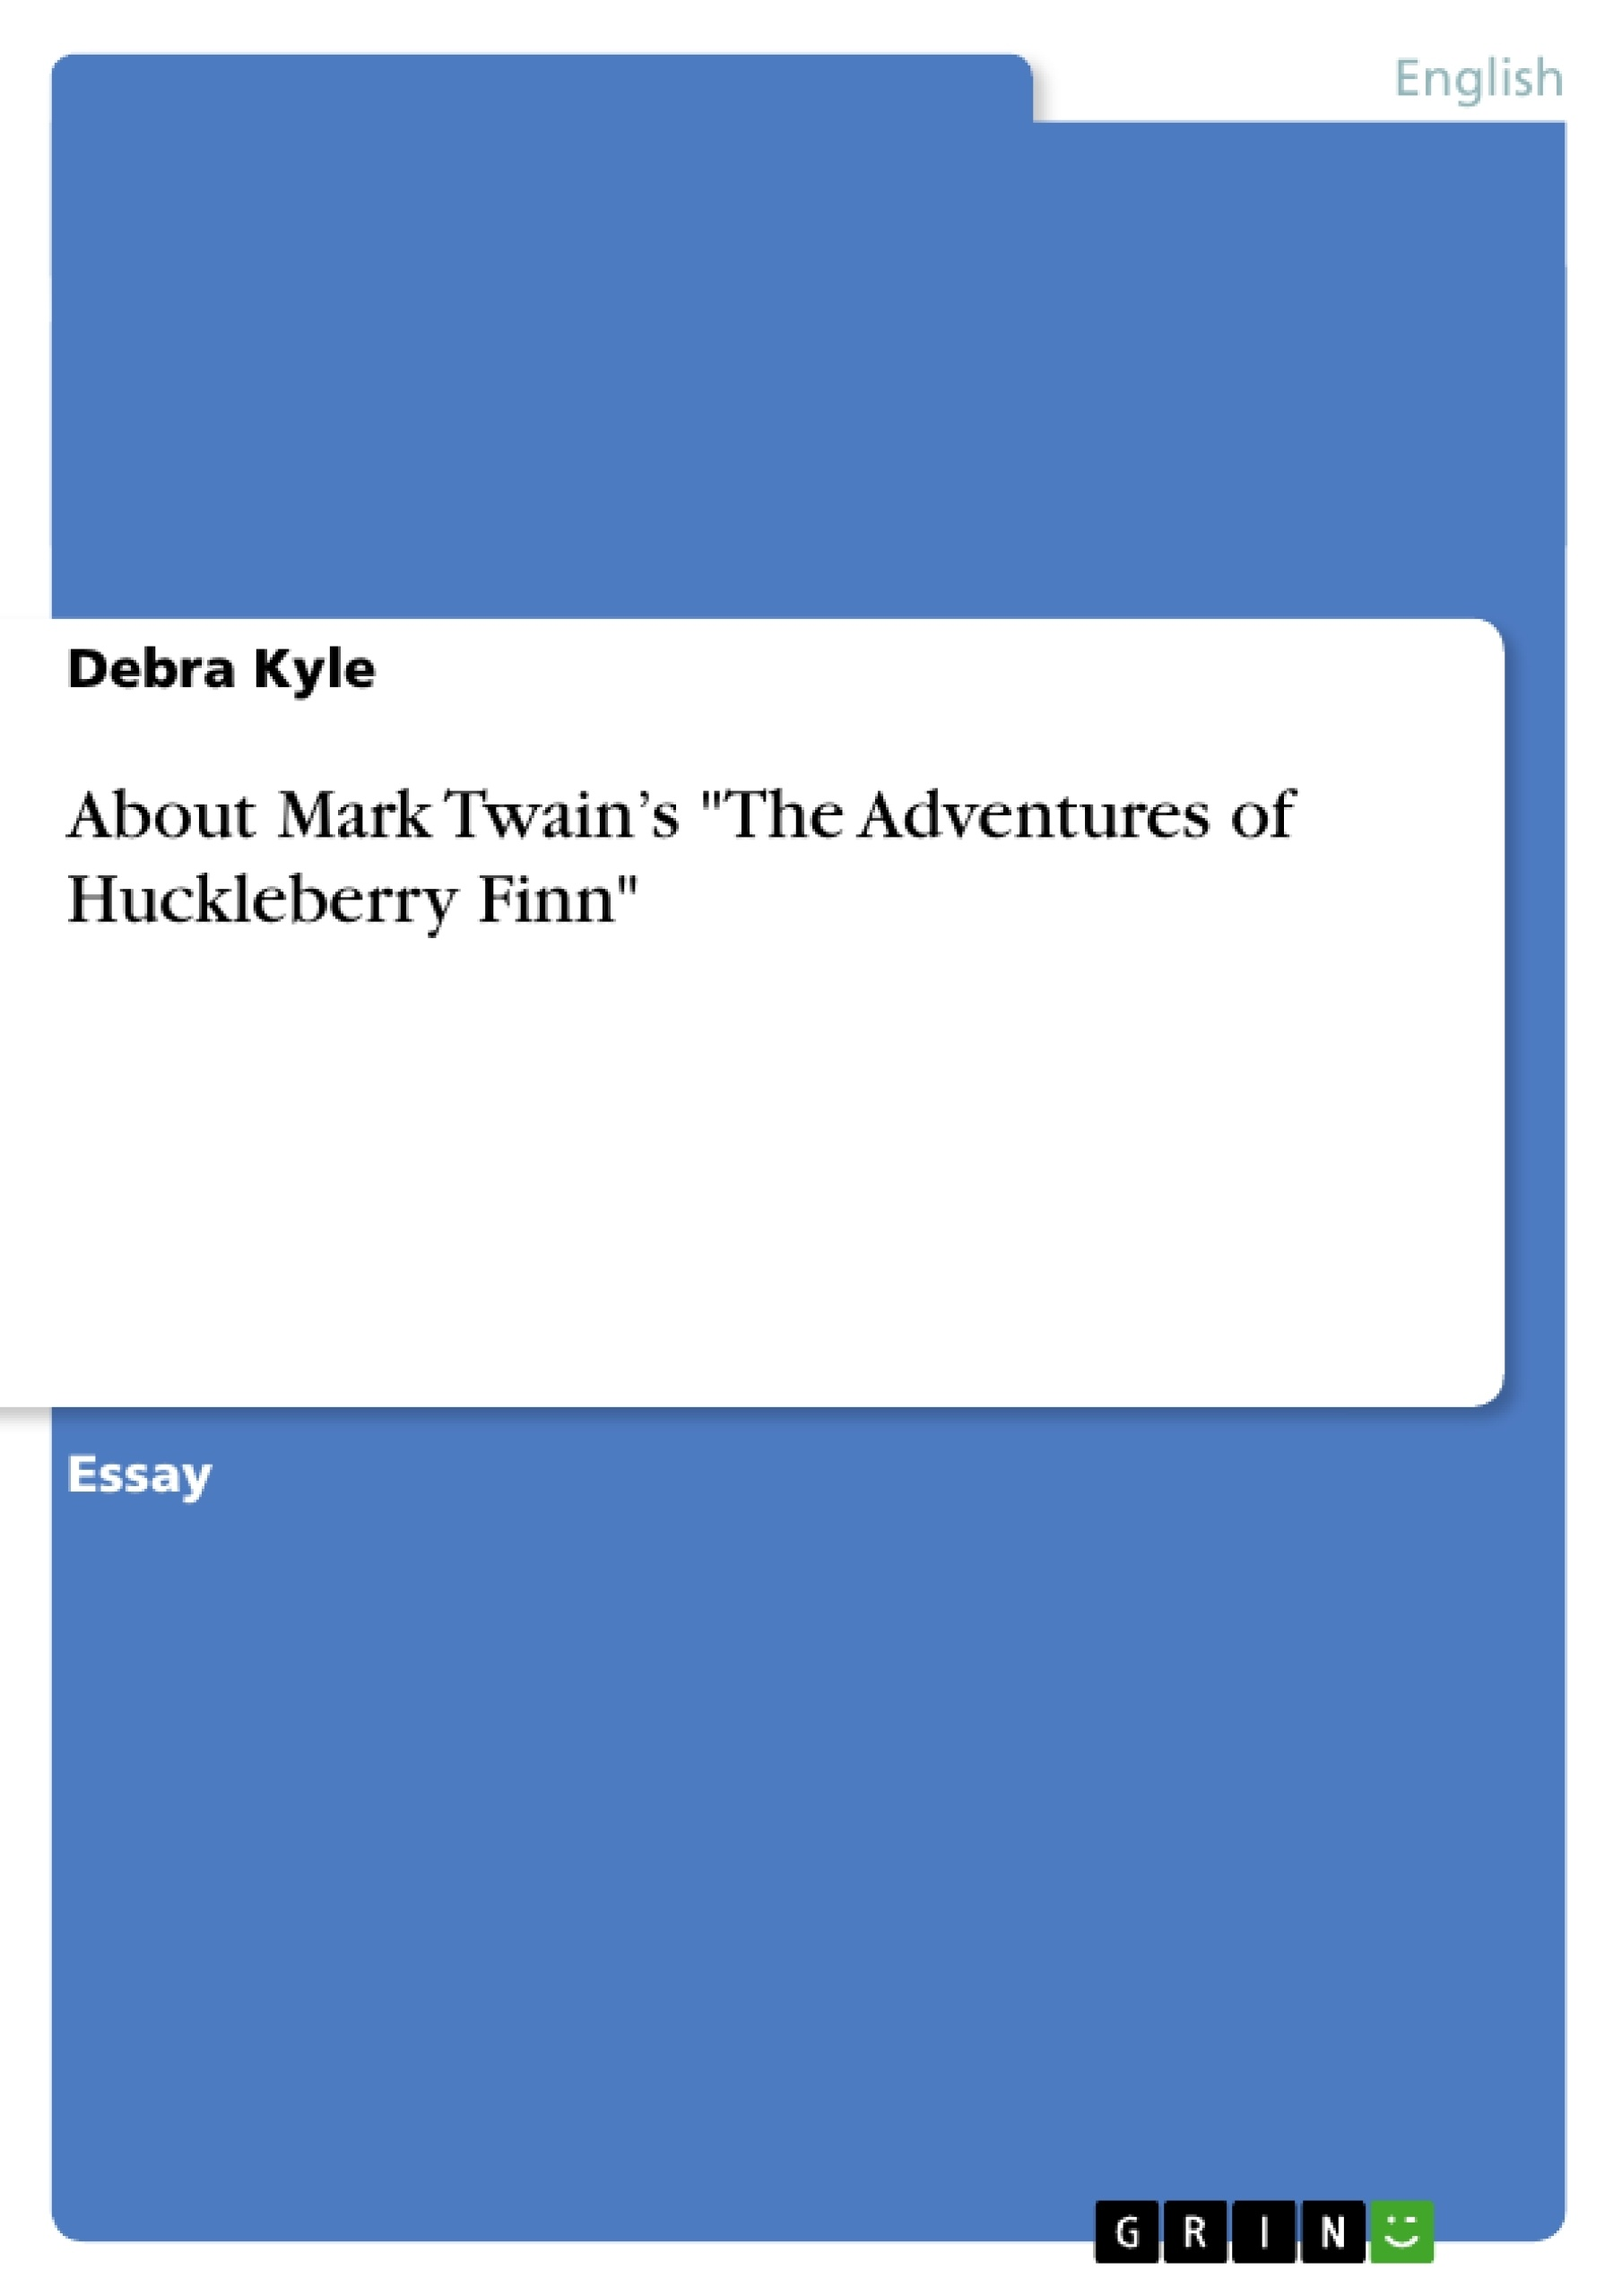 an essay on mark twains the adventures of huckleberry finn Need help on themes in mark twain's the adventures of huckleberry finn check out our thorough thematic analysis from the creators of sparknotes.